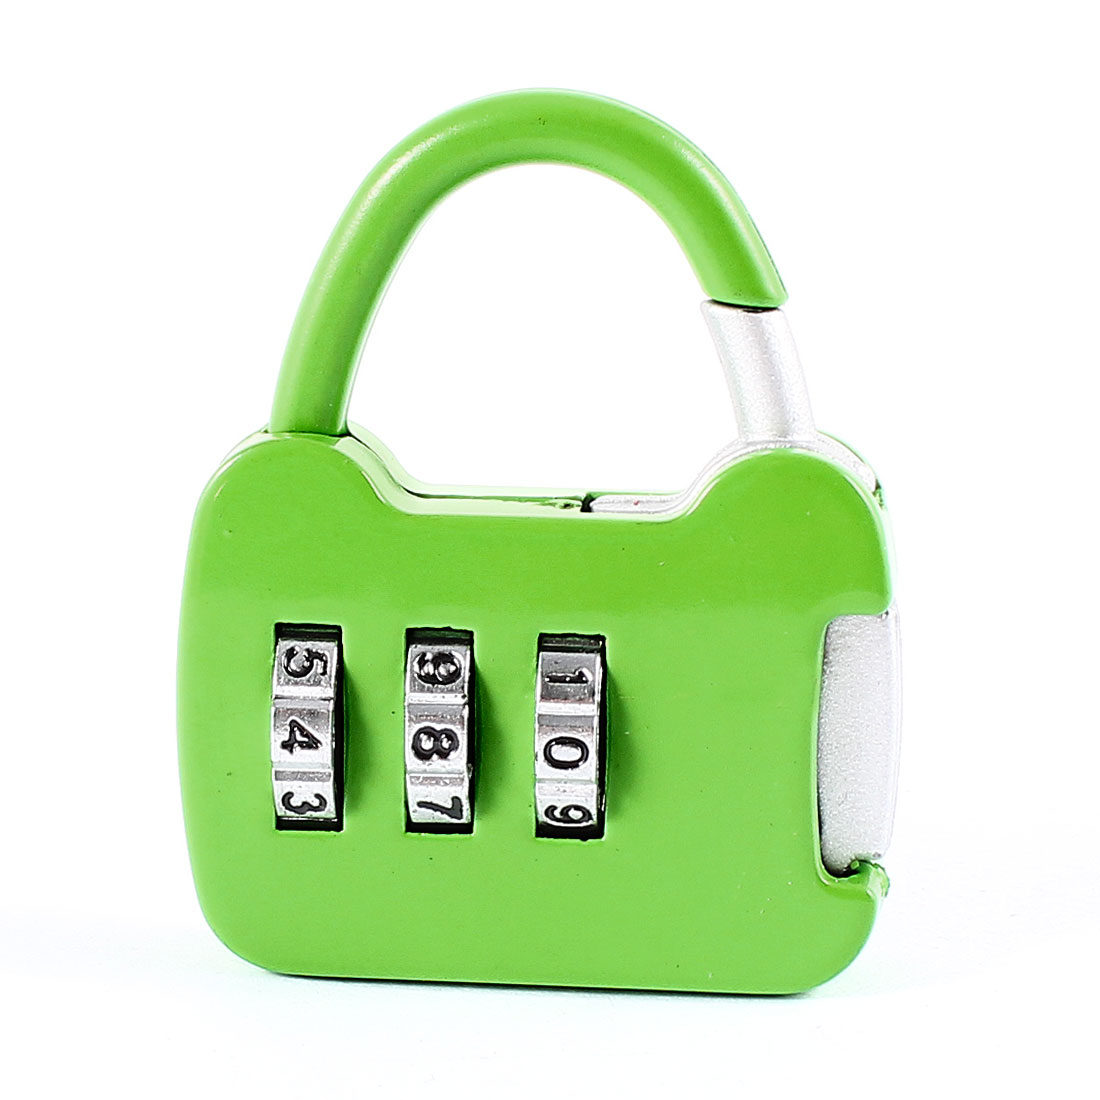 Travel Suitcase Luggage Green Metal Handbag Shape Resettable 3 Digit Combination Lock Padlock